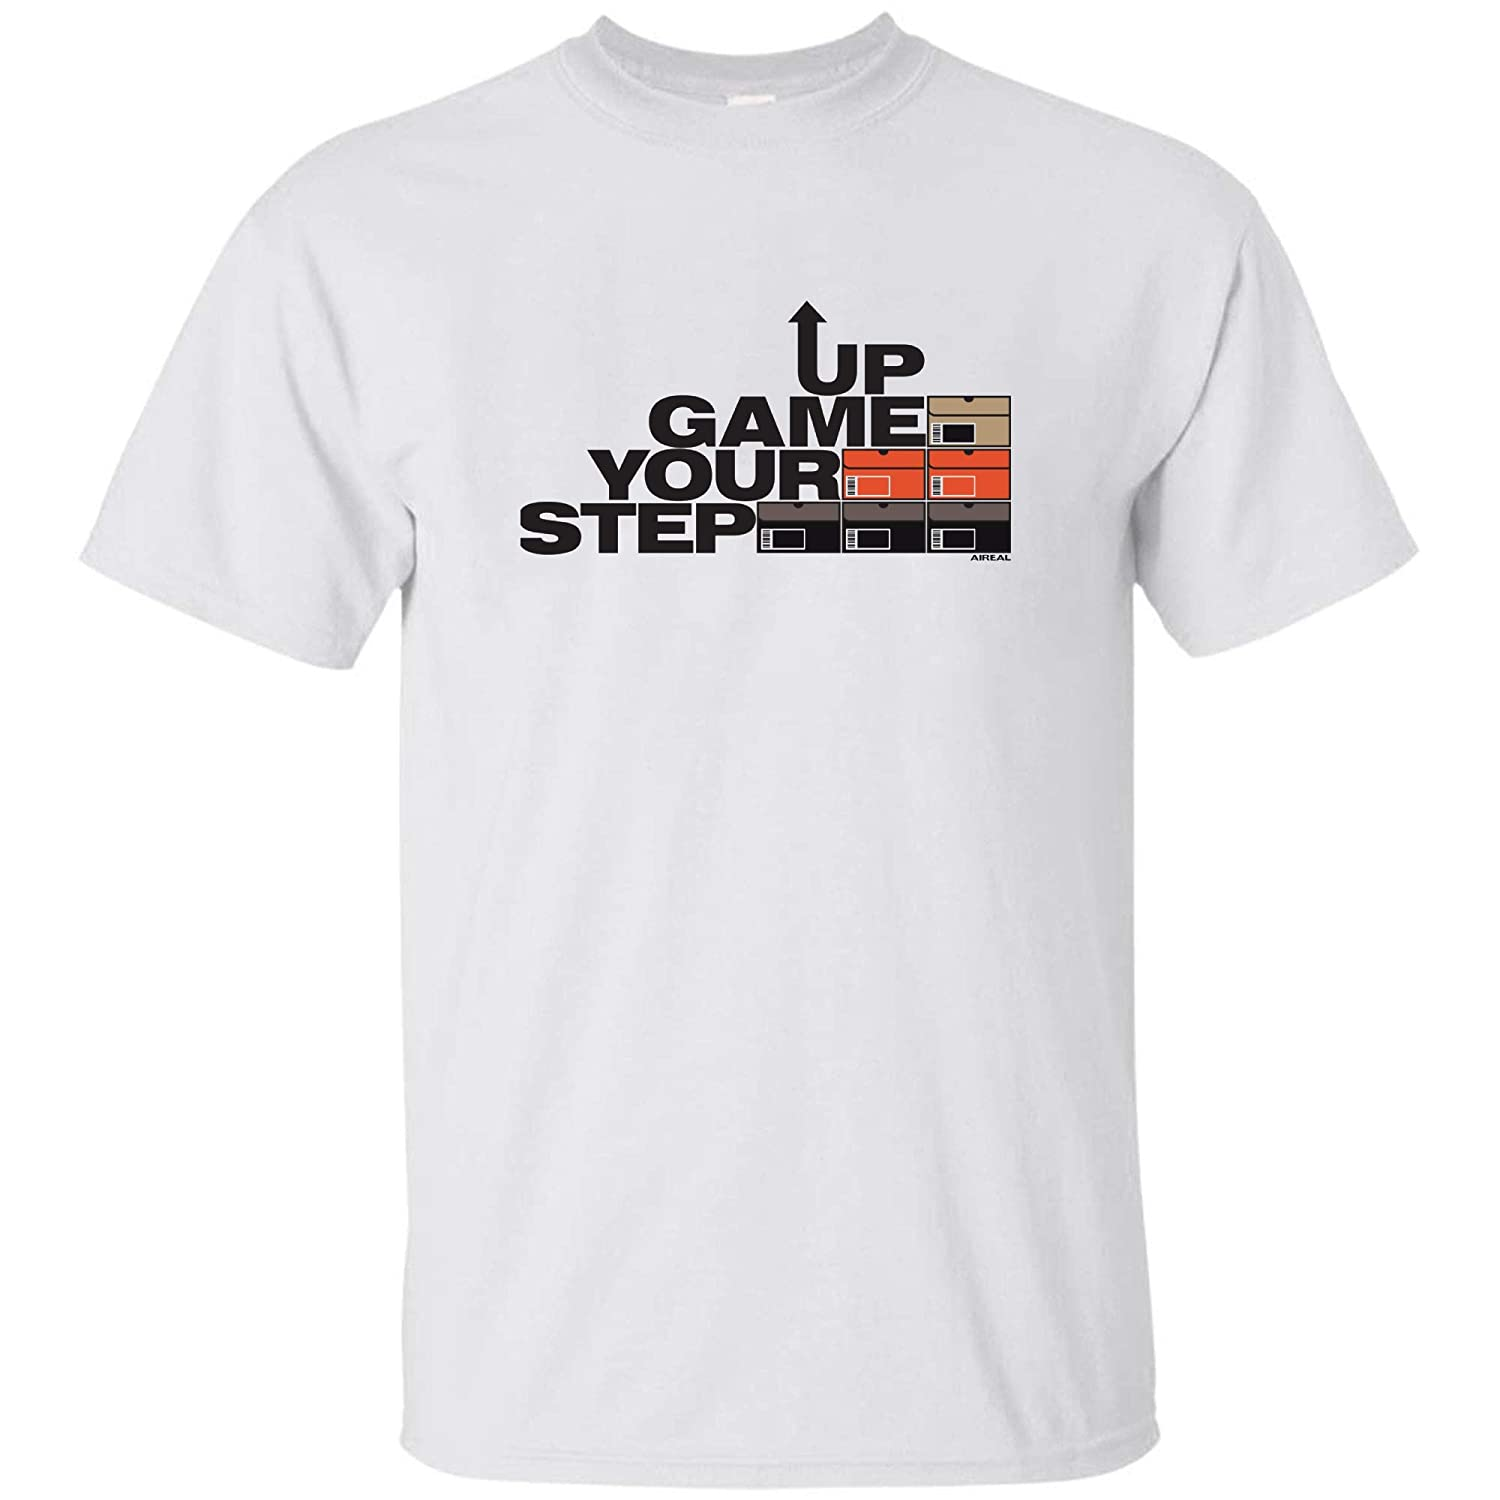 Step Your Game Up Sneakerhead By Aireal Apparel For Men Women Unisex Shirts